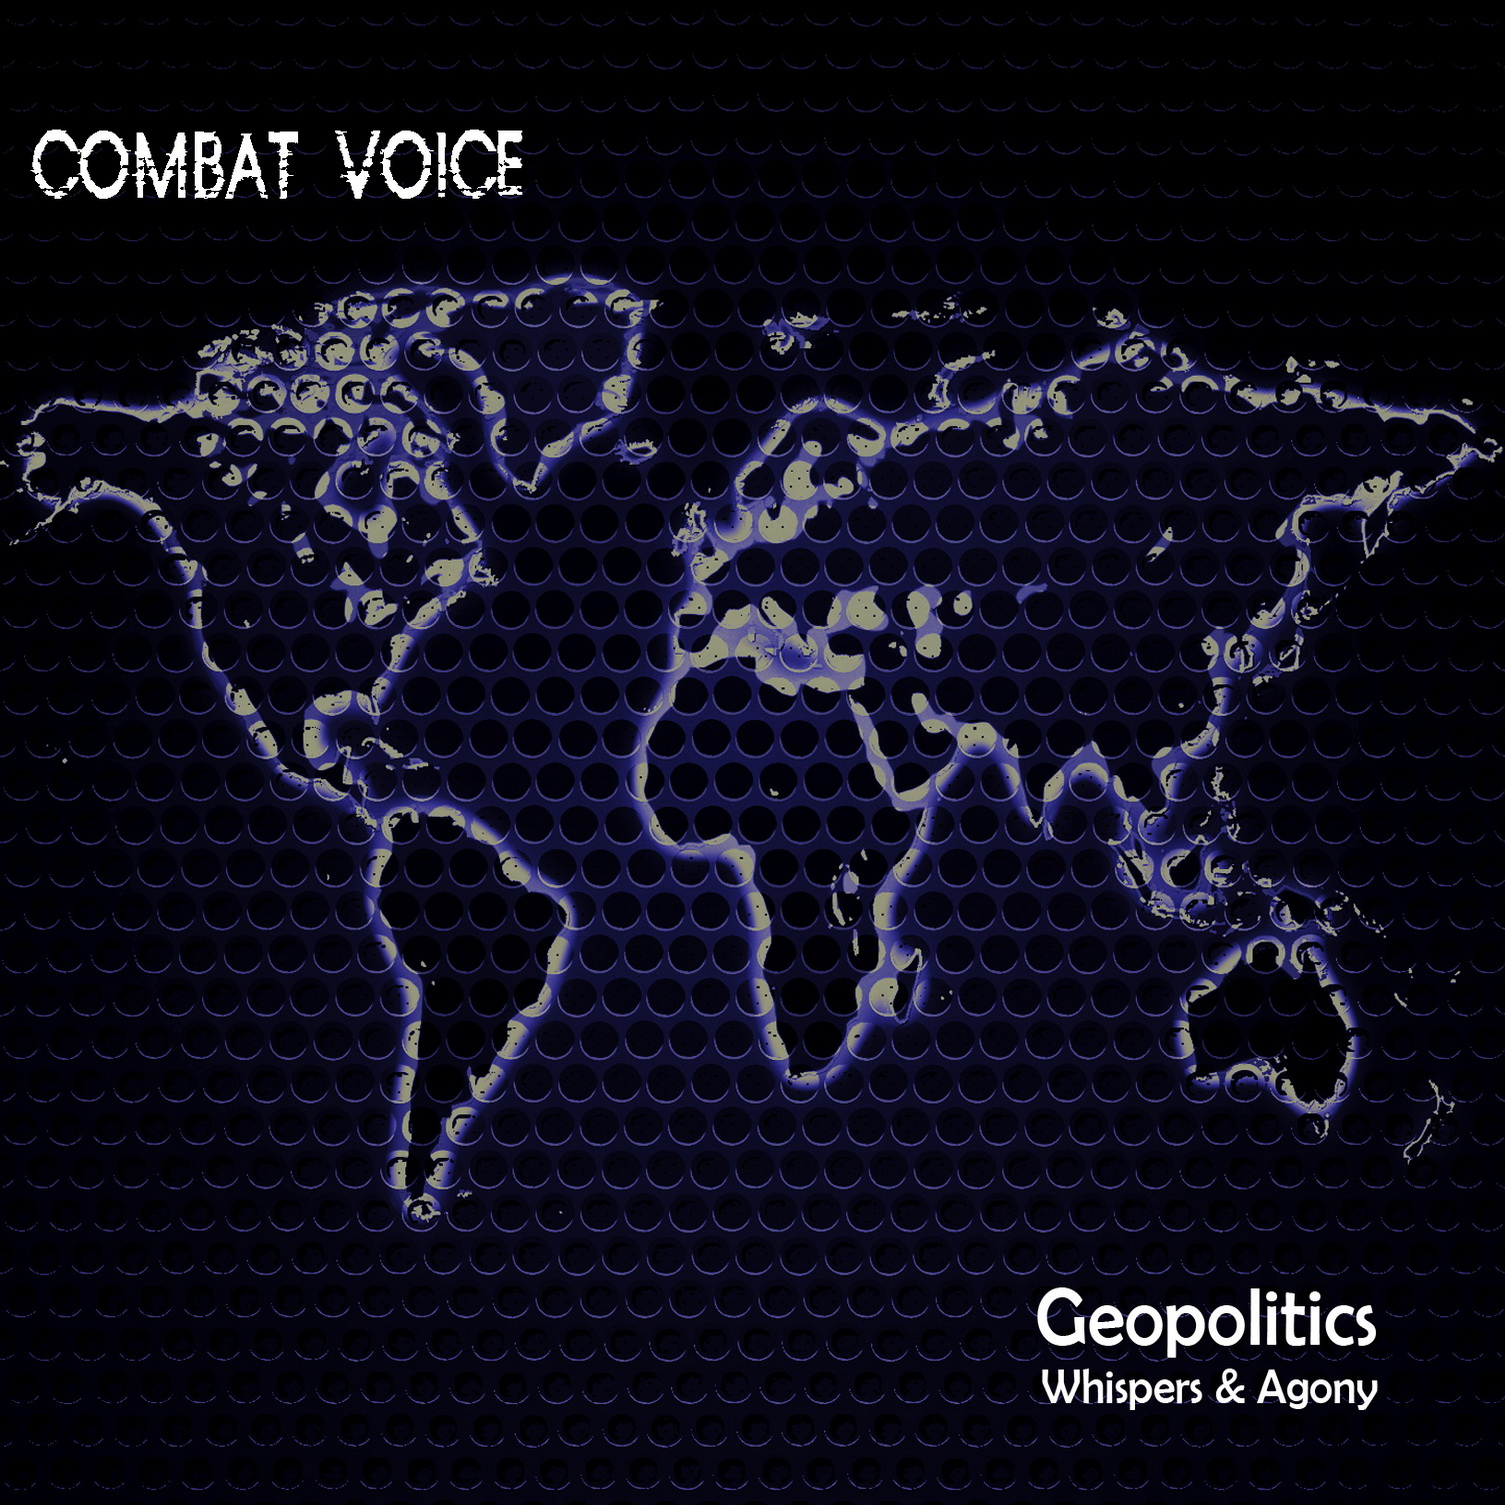 GEOPOLITICS, WHISPERS AND AGONY